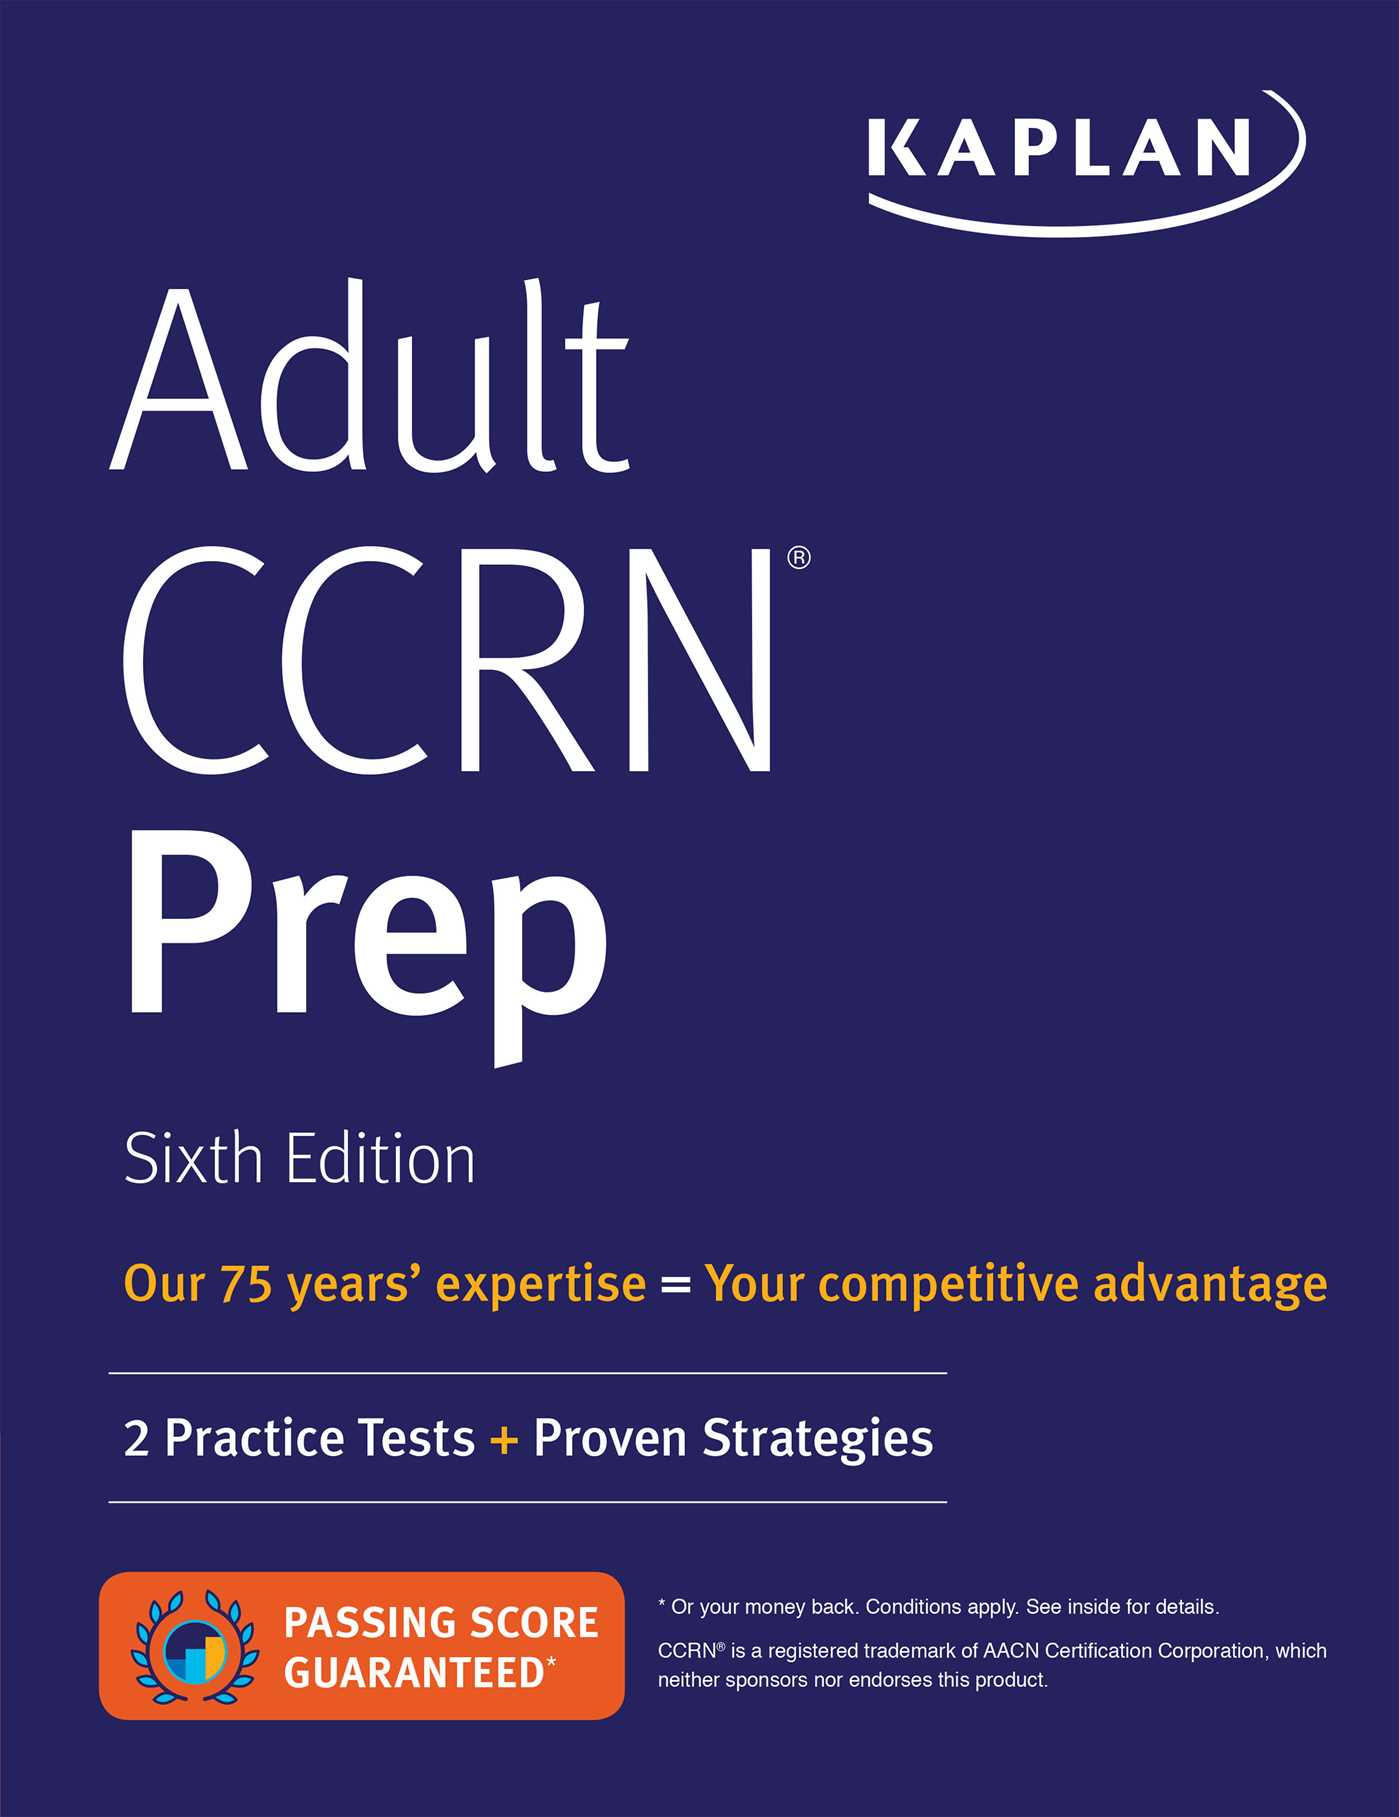 Adult Ccrn Prep Book By Kaplan Nursing Official Publisher Page